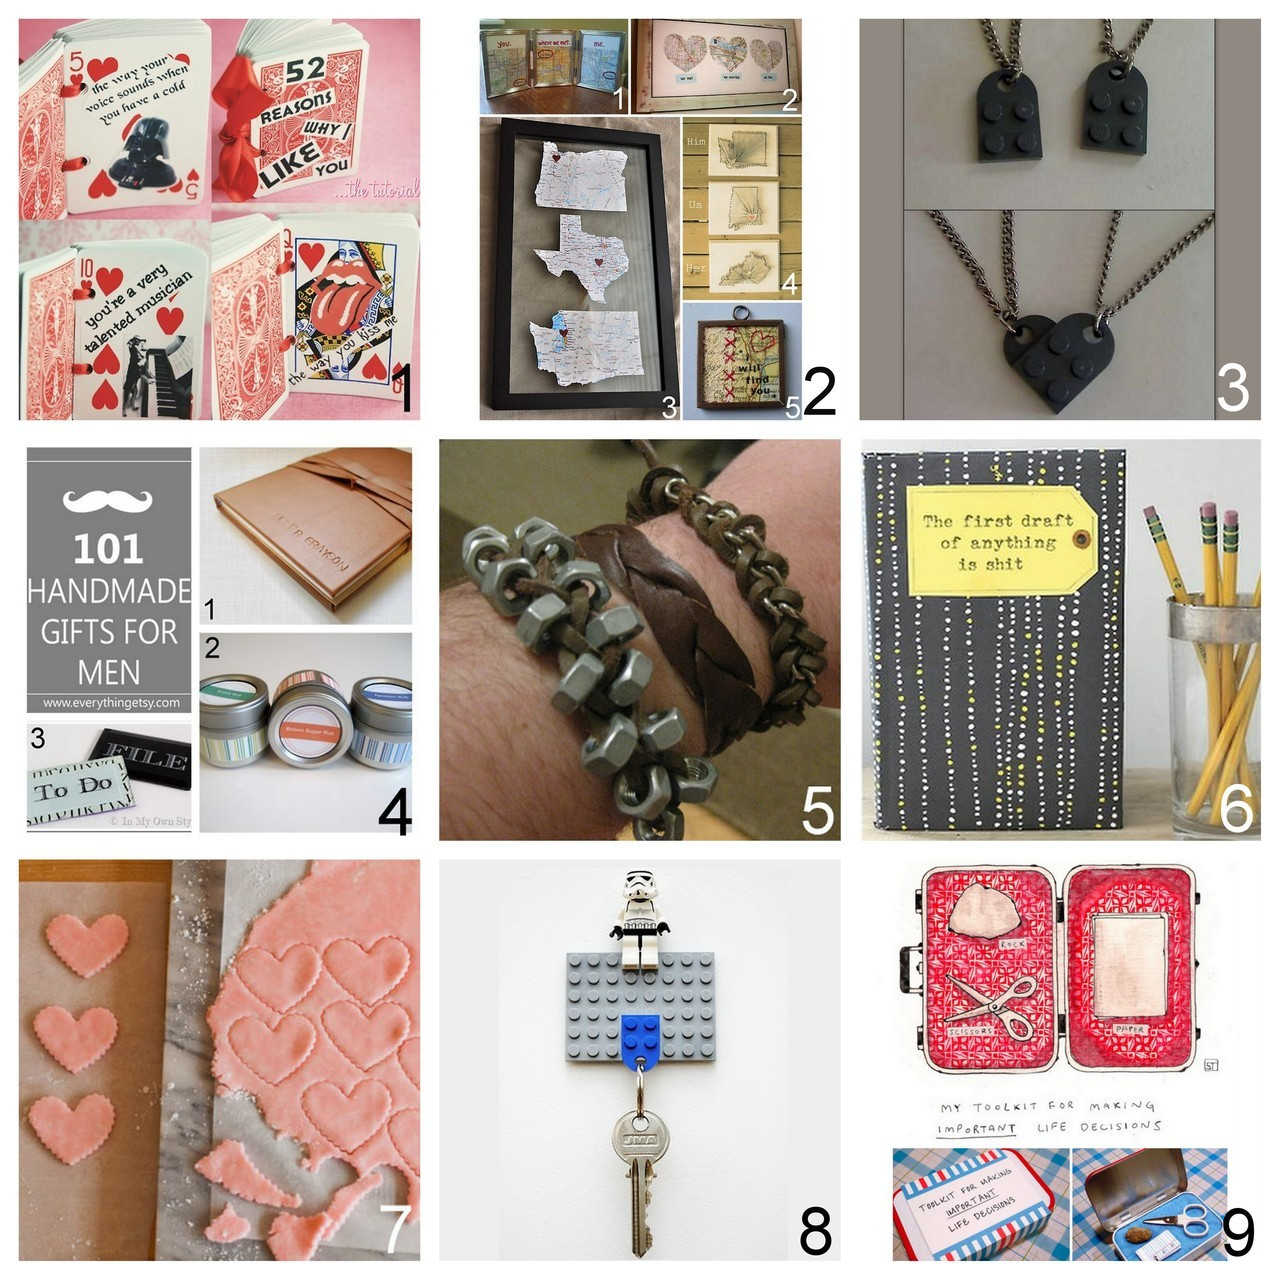 Best ideas about Fun Gift Ideas For Boyfriend . Save or Pin Gift Ideas for Boyfriend Cute Birthday Gift Ideas For A Now.